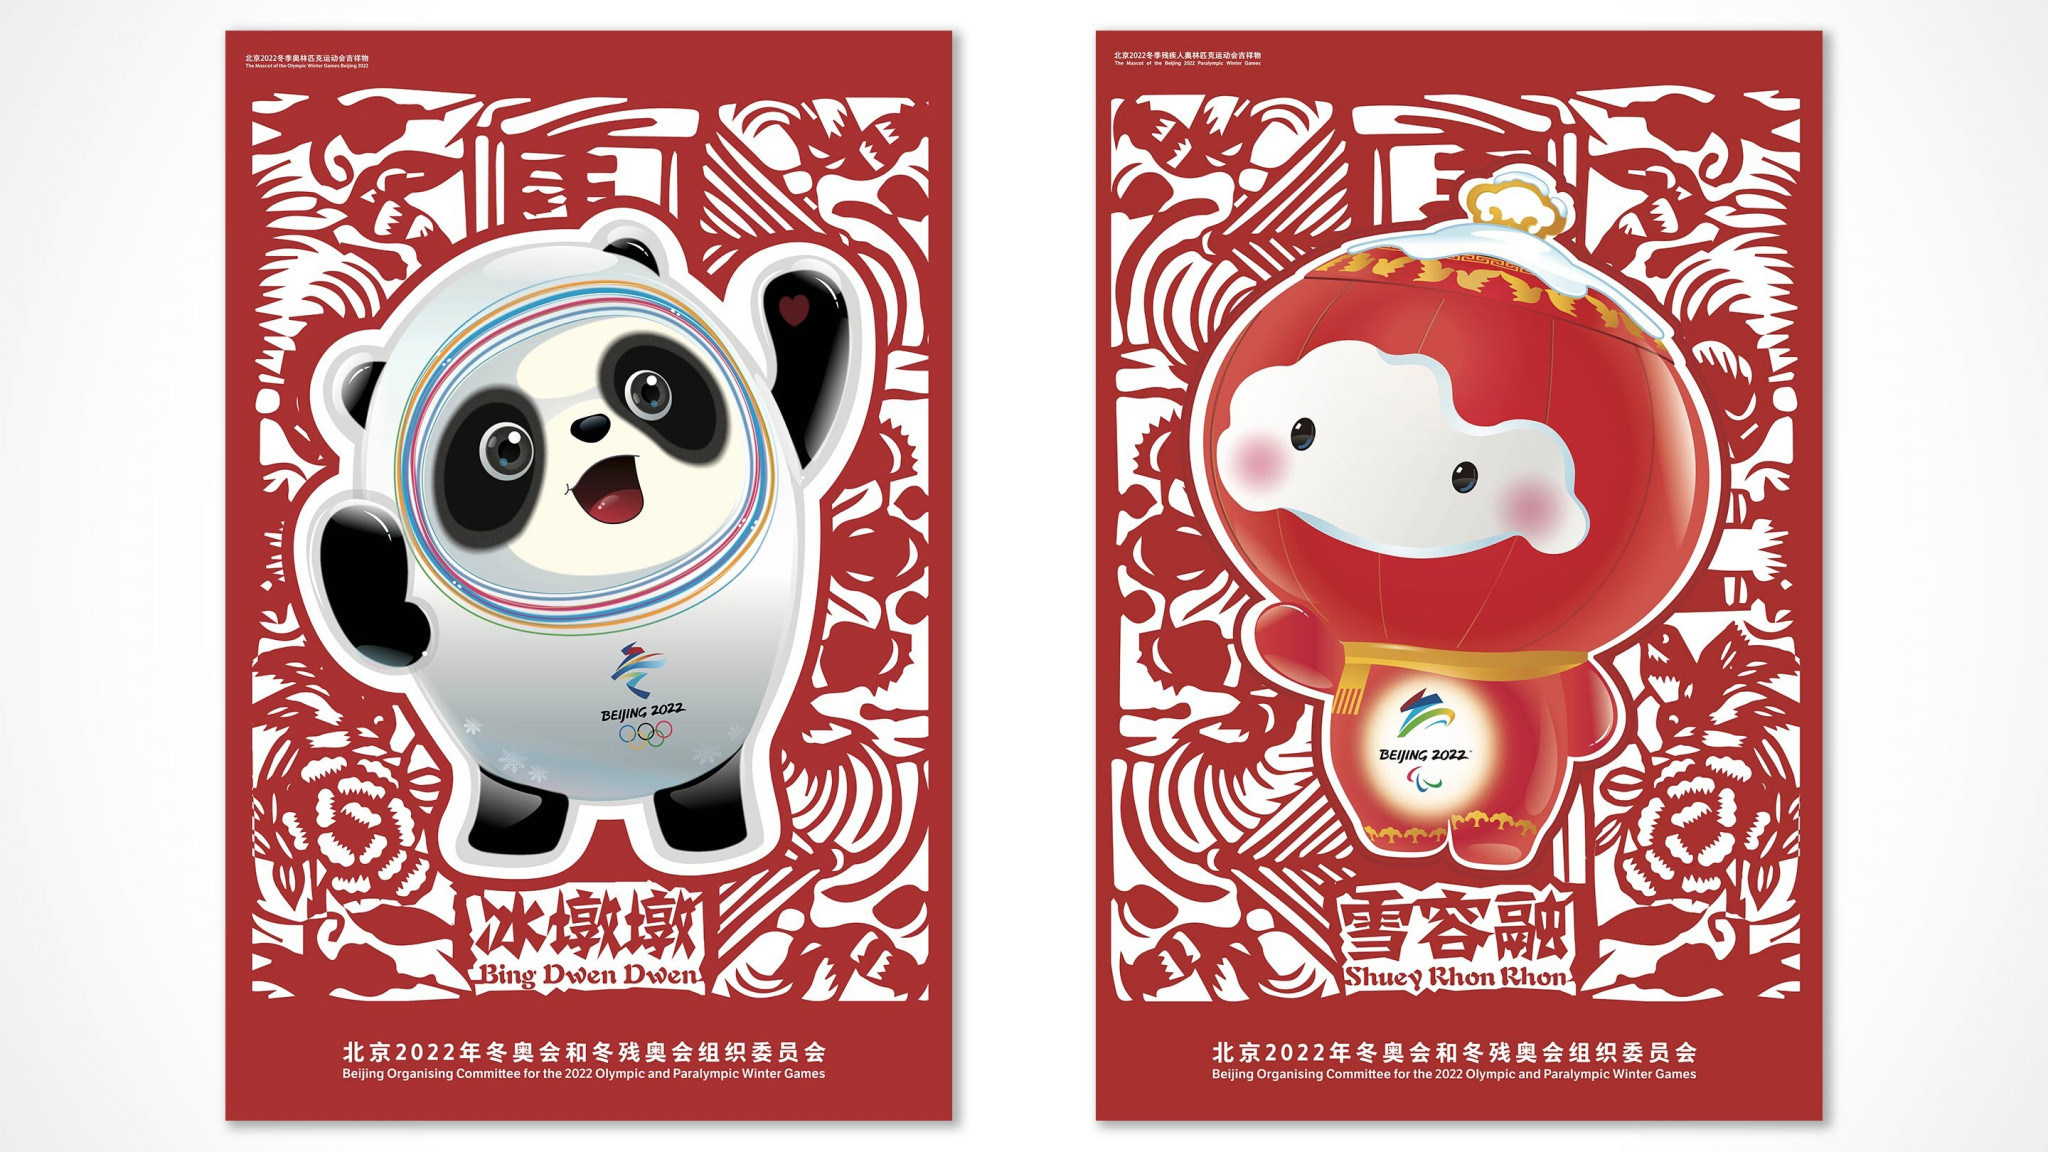 Official posters for Beijing 2022 Winter Olympics and Paralympics revealed